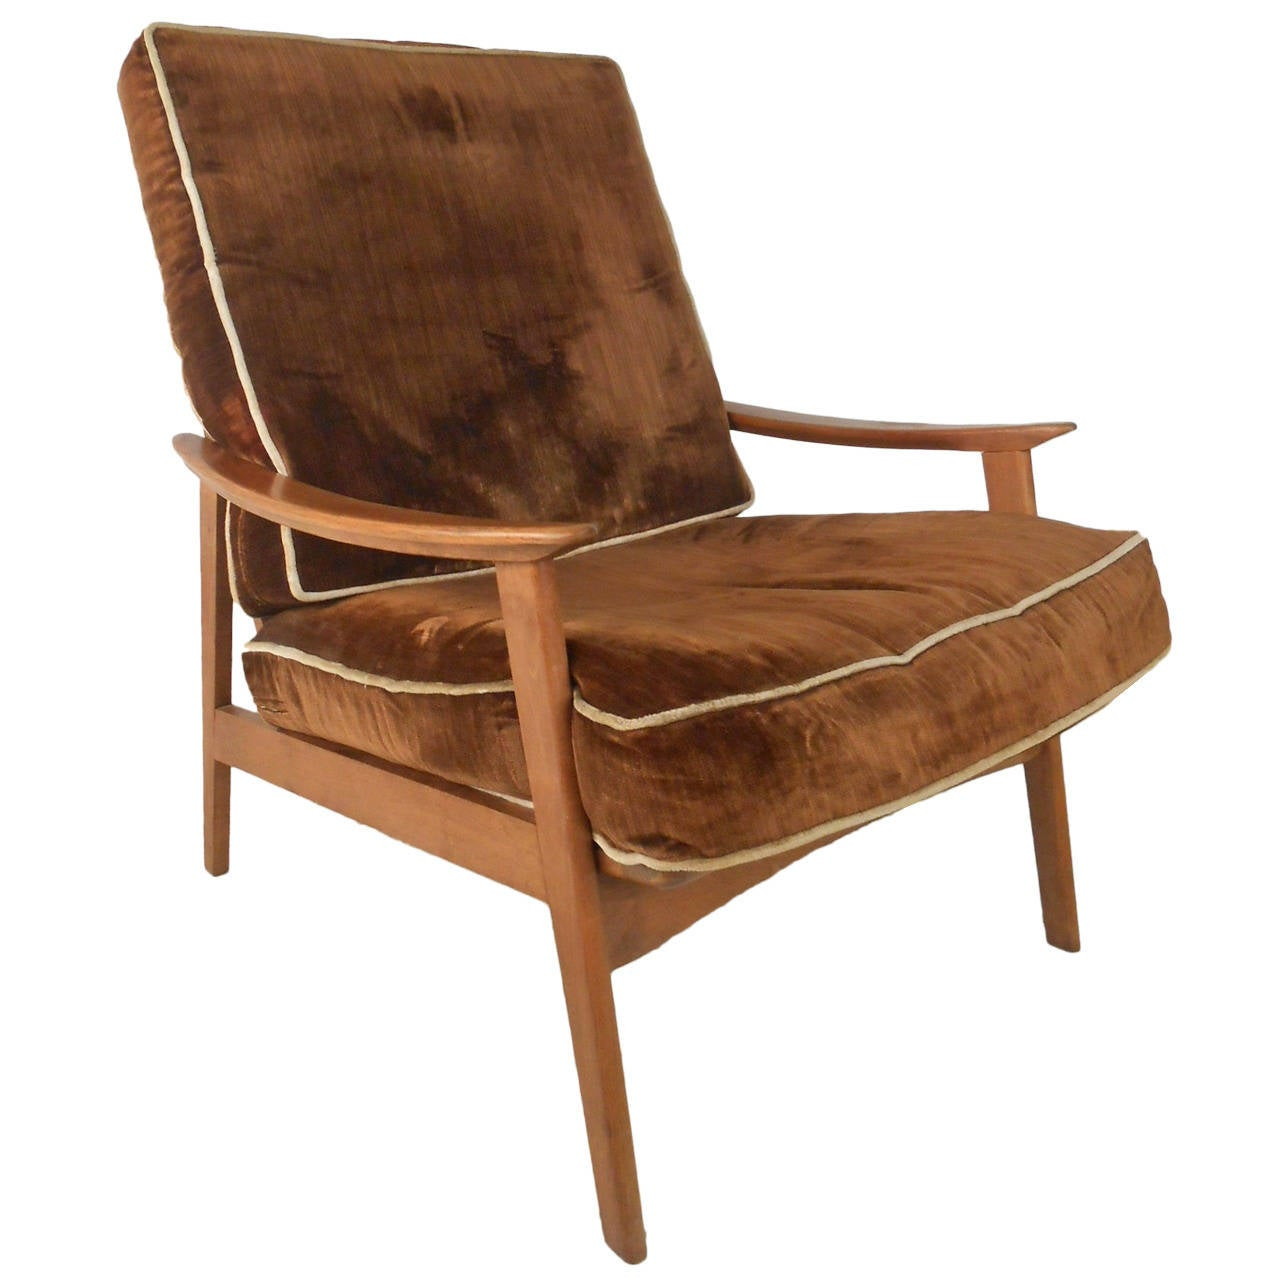 this mid century modern american walnut lounge chair is no longer